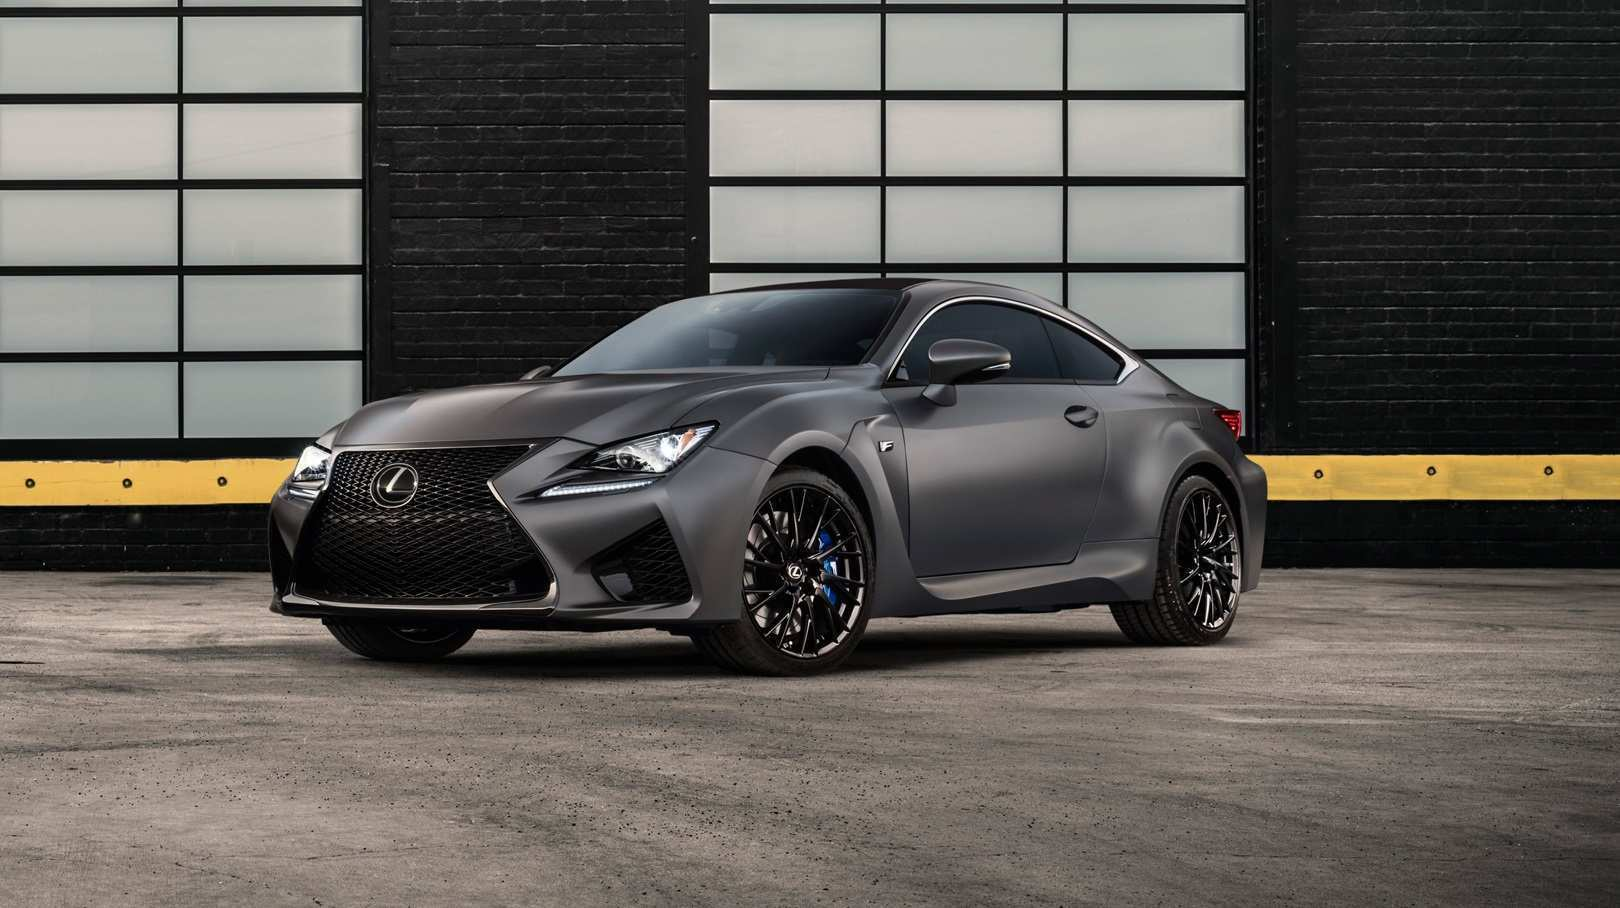 82 A Lexus Rcf 2019 Release Date And Concept